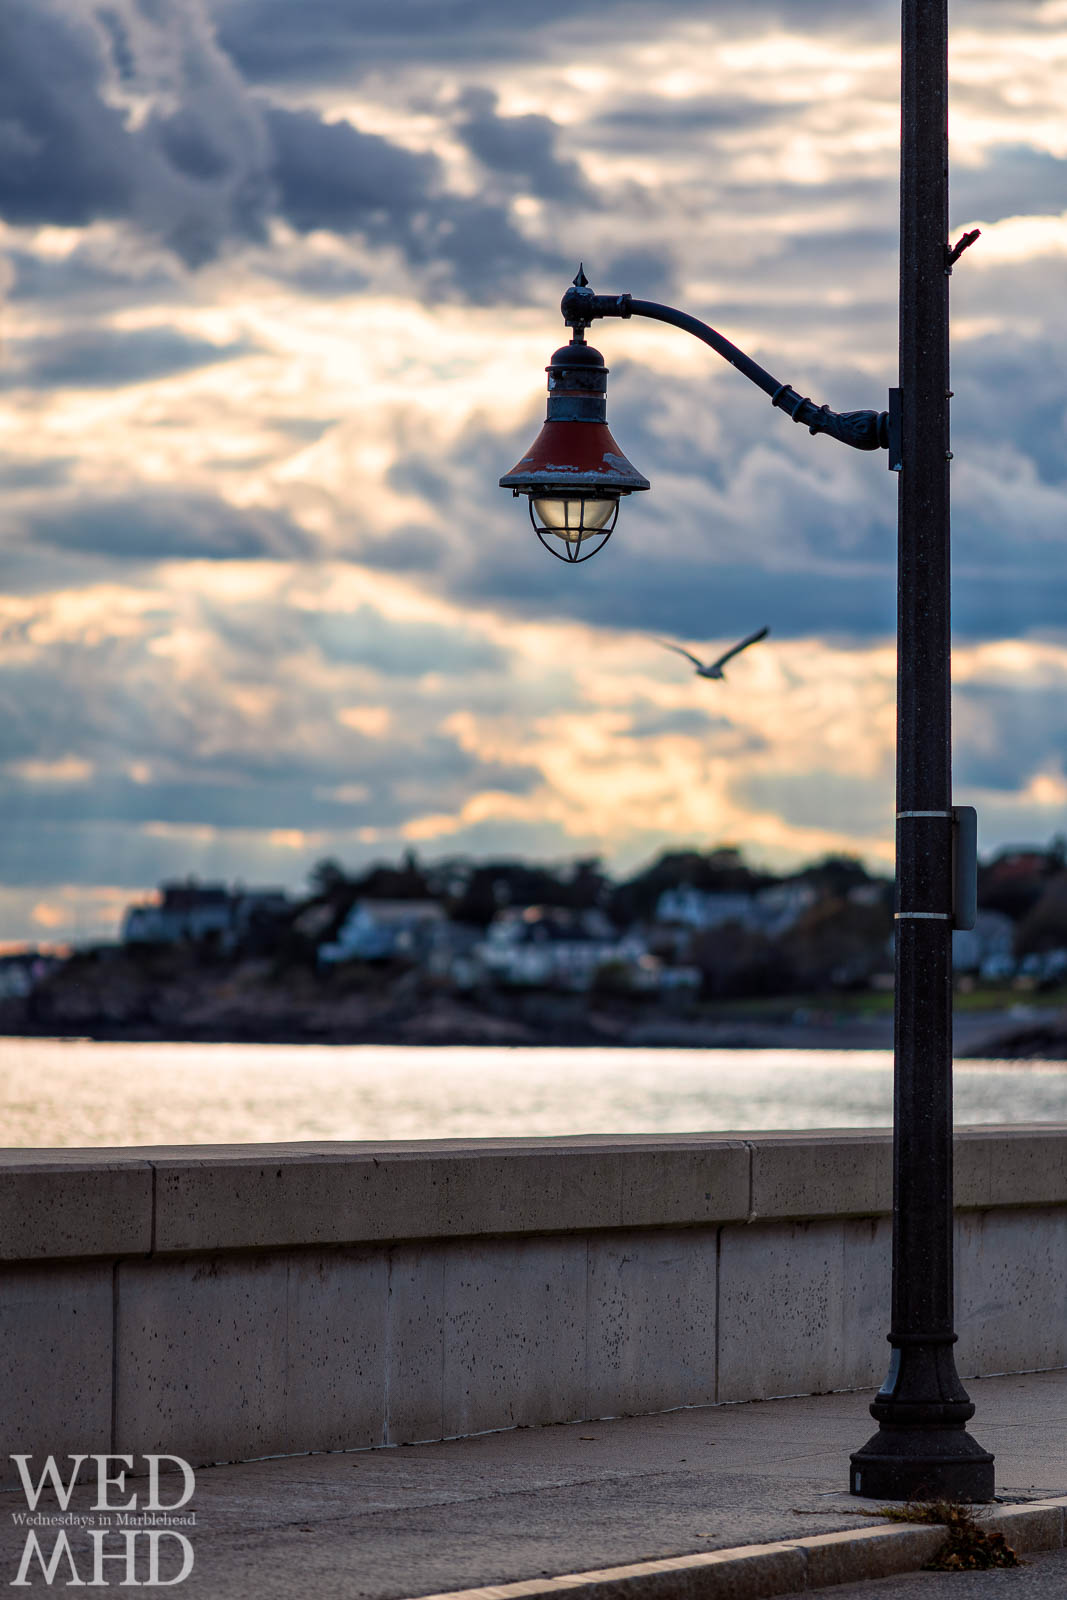 A seagull passes behind one of the lamp posts along the causeway as the sun begins to set